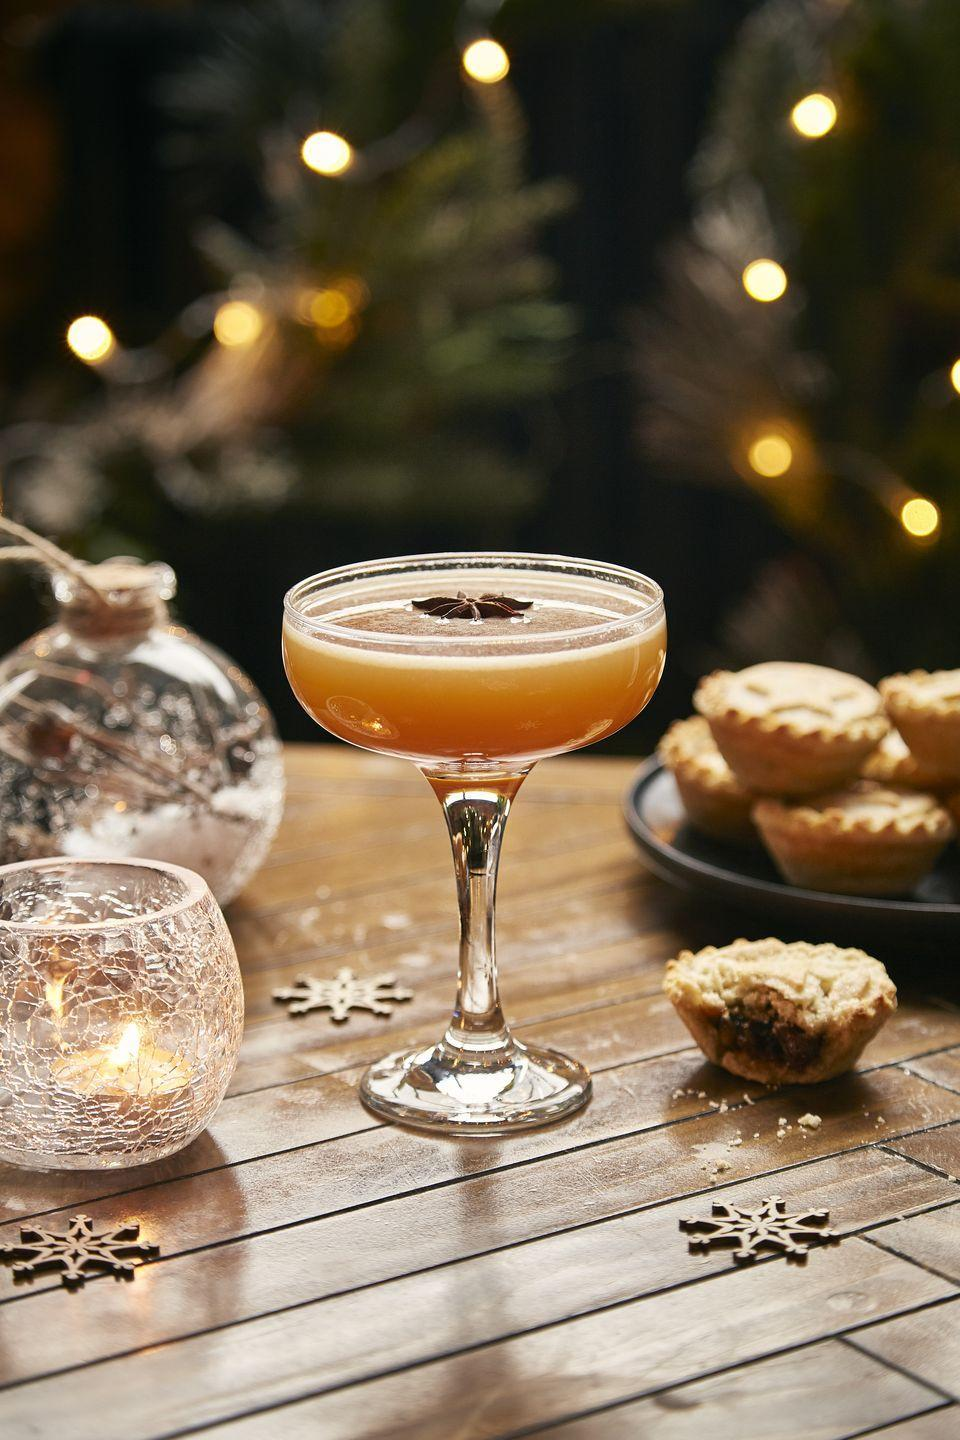 """<p>First, make a mince pie pastry syrup by crumbling three mince pies into a pan with 350ml water and 150ml sugar, leaving on a low heat for 25 minutes before straining. </p><p>To make the cocktail, combine 35ml <a href=""""https://www.waitrose.com/ecom/products/discarded-sweet-cascara-vermouth/802286-714356-714357"""" rel=""""nofollow noopener"""" target=""""_blank"""" data-ylk=""""slk:Discarded Sweet Cascara Vermouth"""" class=""""link rapid-noclick-resp"""">Discarded Sweet Cascara Vermouth</a>, 15ml <a href=""""https://www.ocado.com/products/discarded-banana-rum-508619011"""" rel=""""nofollow noopener"""" target=""""_blank"""" data-ylk=""""slk:Banana Peel Rum,"""" class=""""link rapid-noclick-resp"""">Banana Peel Rum,</a> 20ml pie pastry syrup and 25ml lemon in a shaker. Shake before fine straining into a coupe and dusting with icing sugar.<br></p>"""